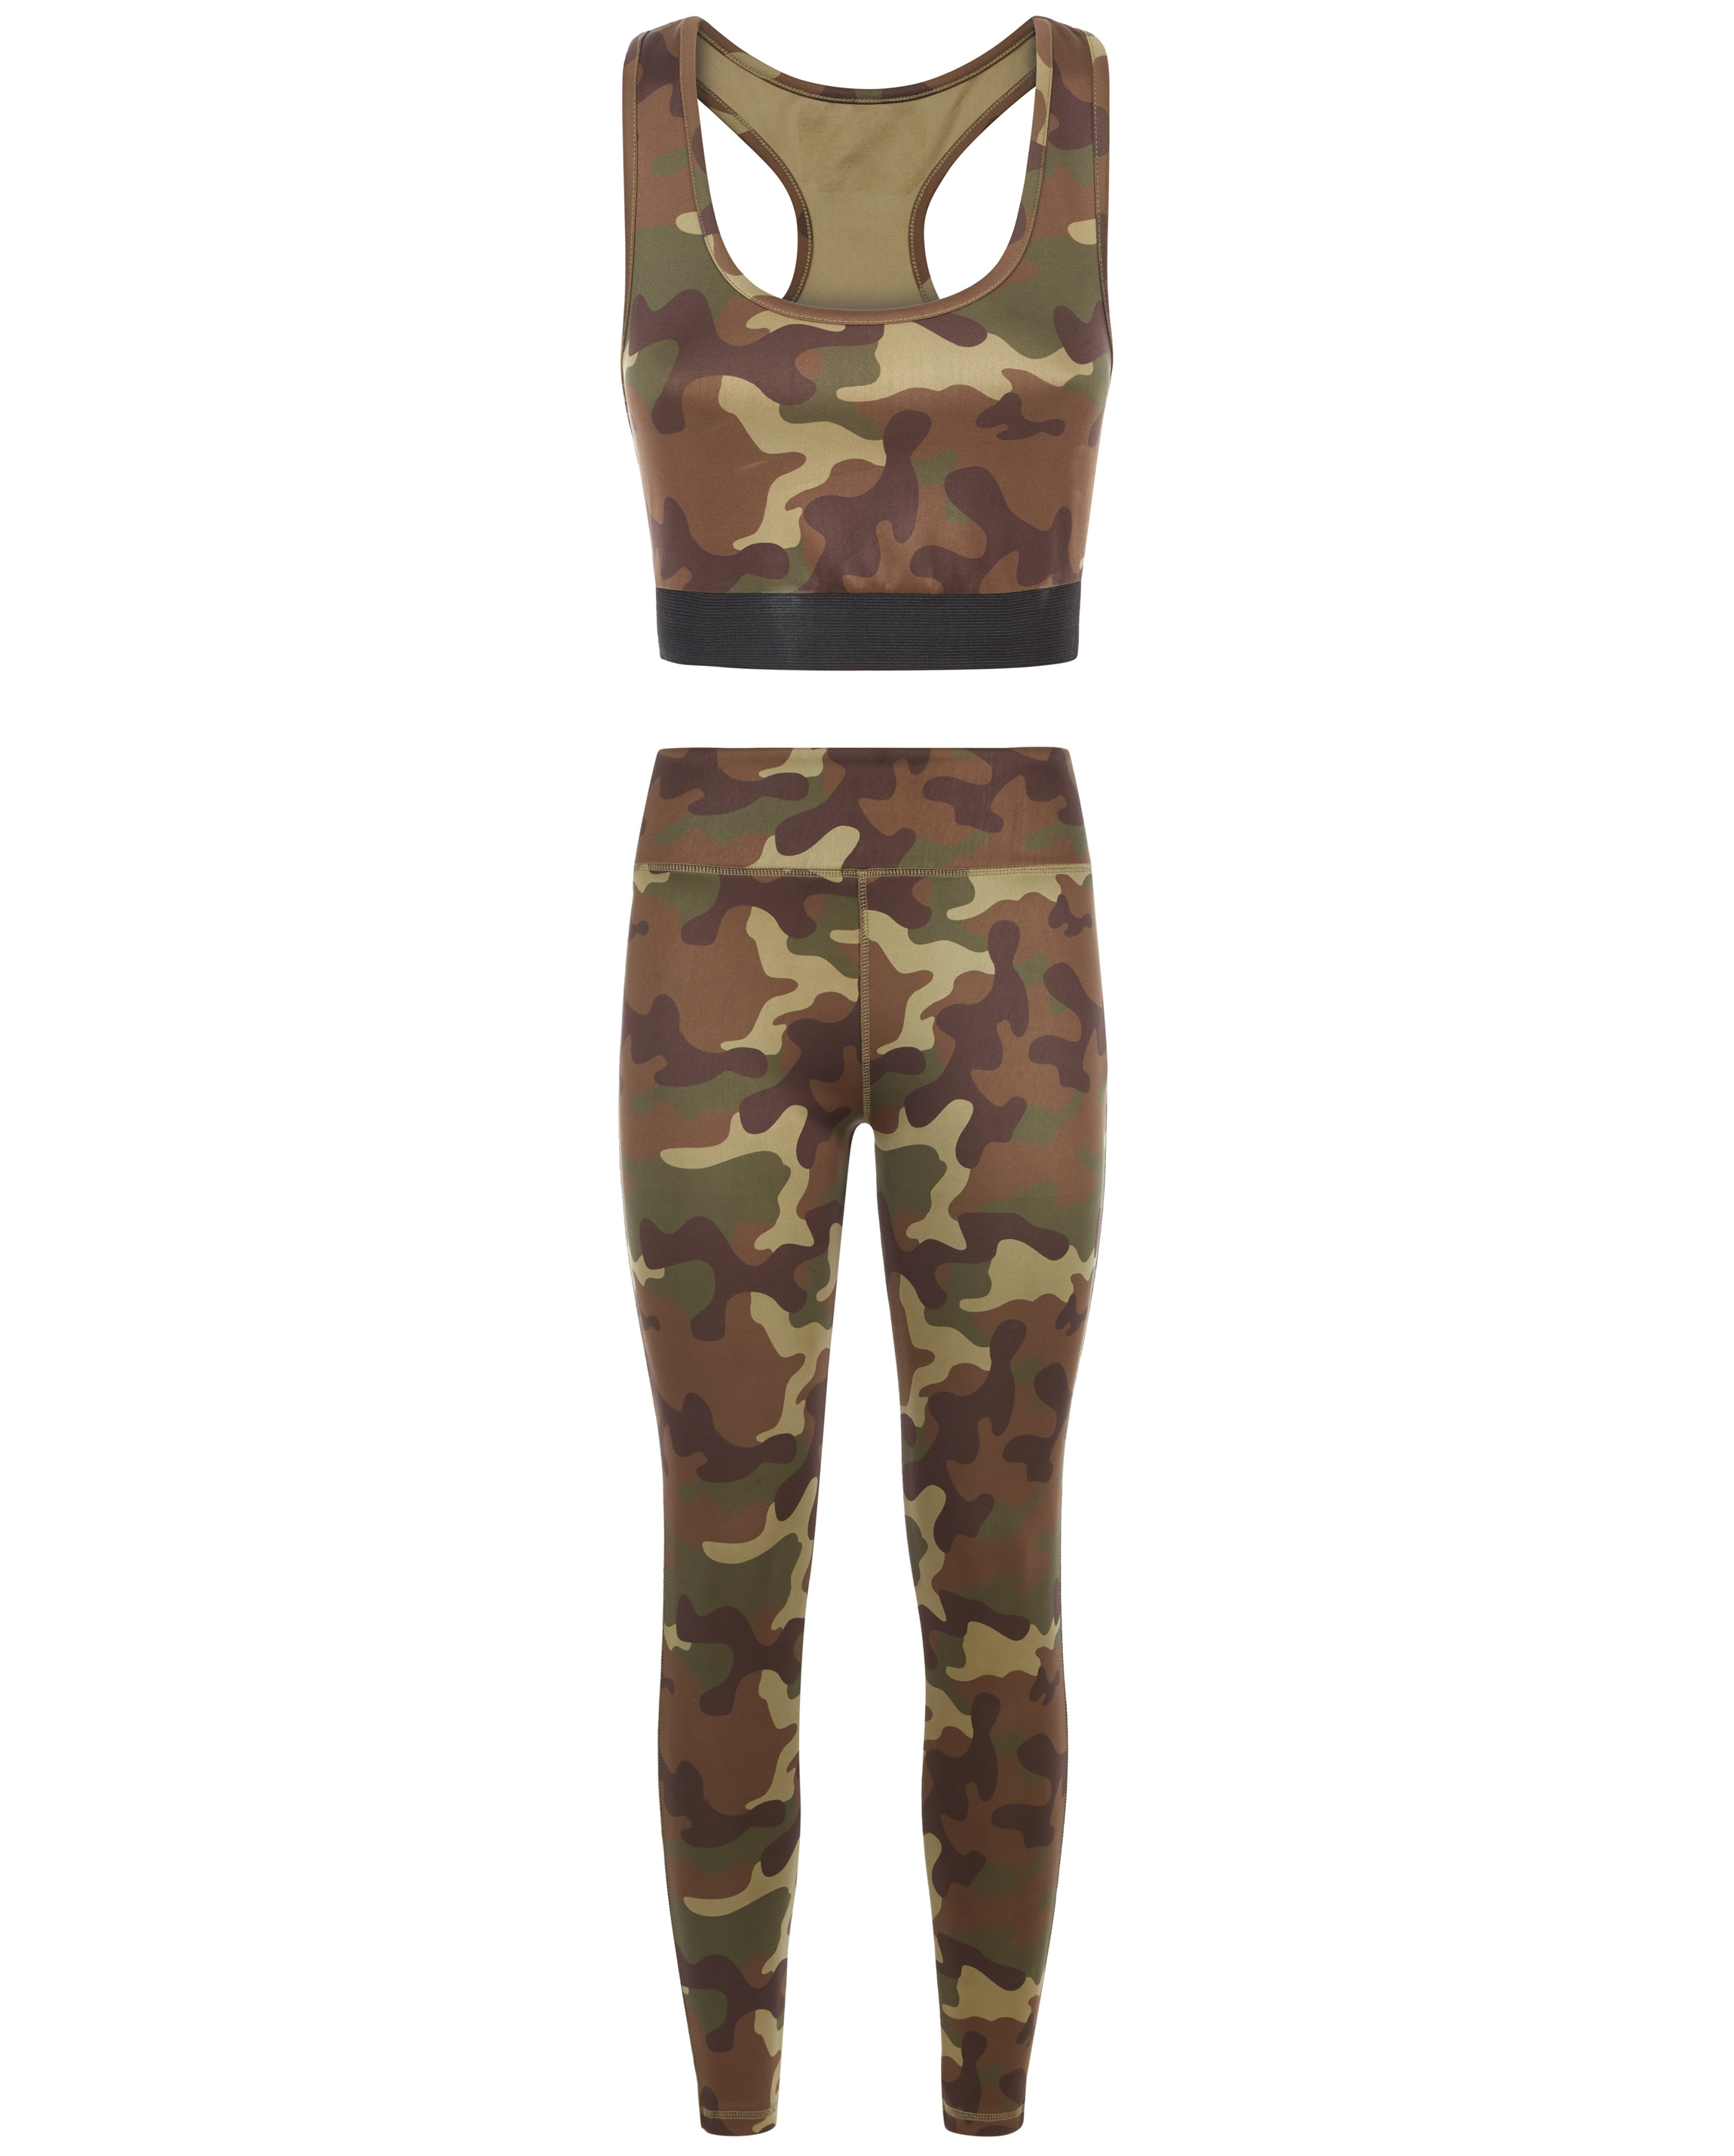 model wearing New Look Khaki Camo Print Sports Bralette; Khaki Camo Print Sports Leggings